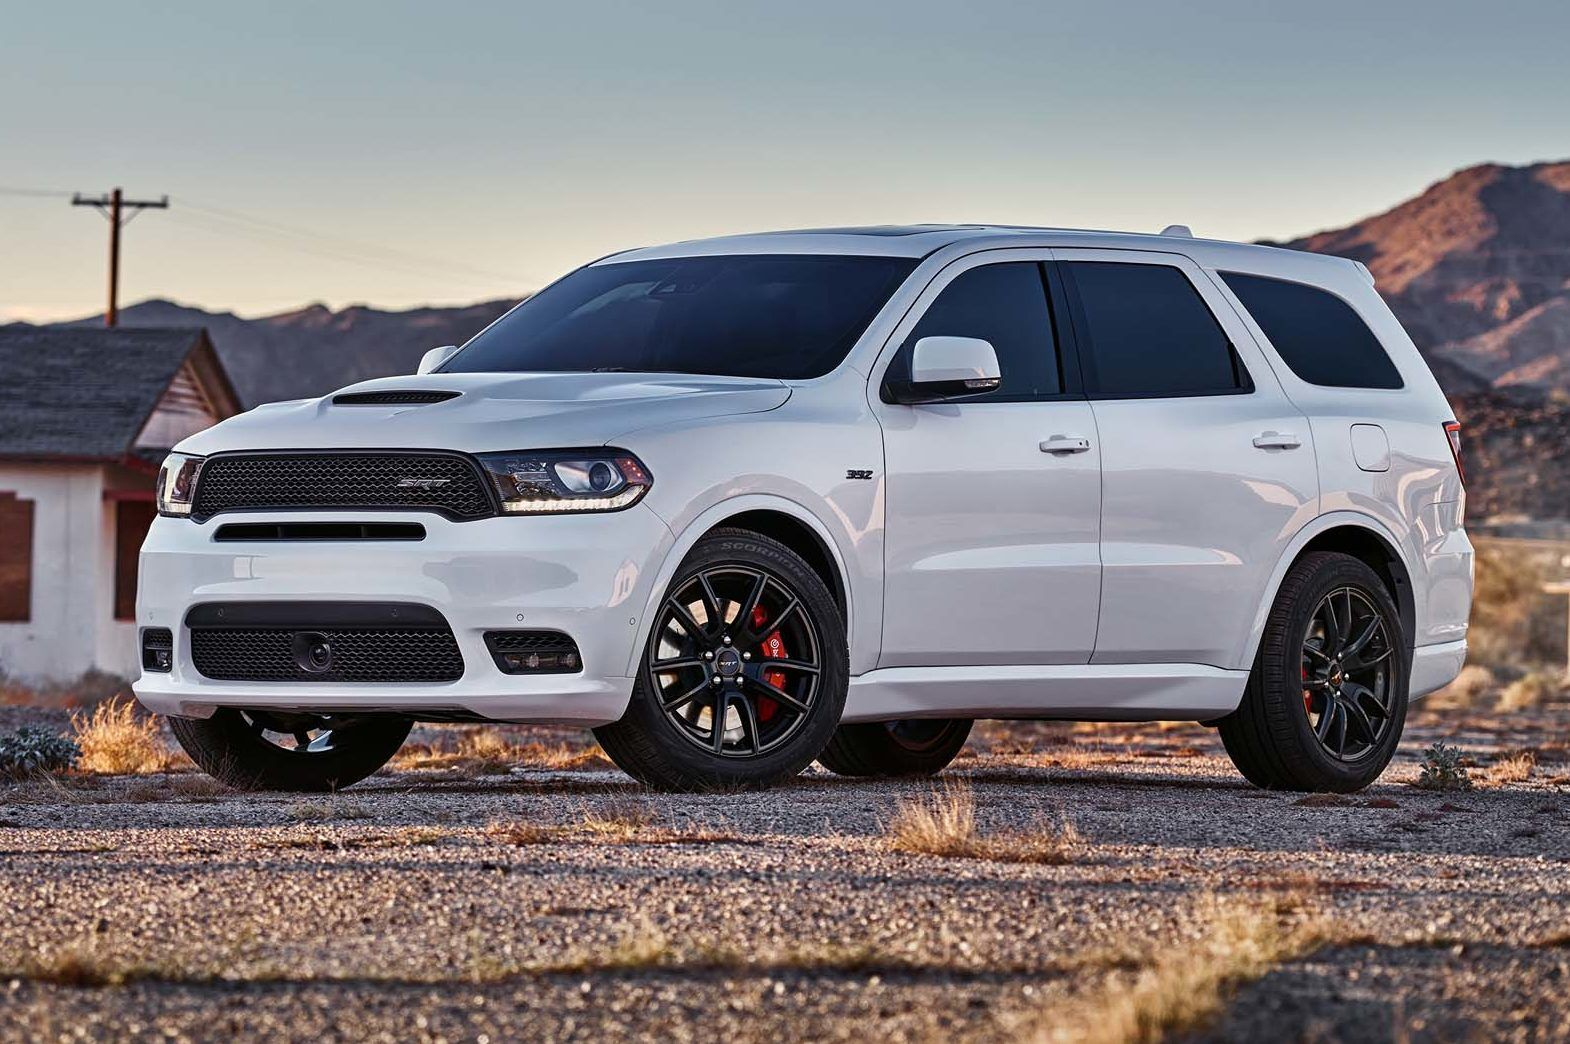 2019 Dodge Durango SRT UAE